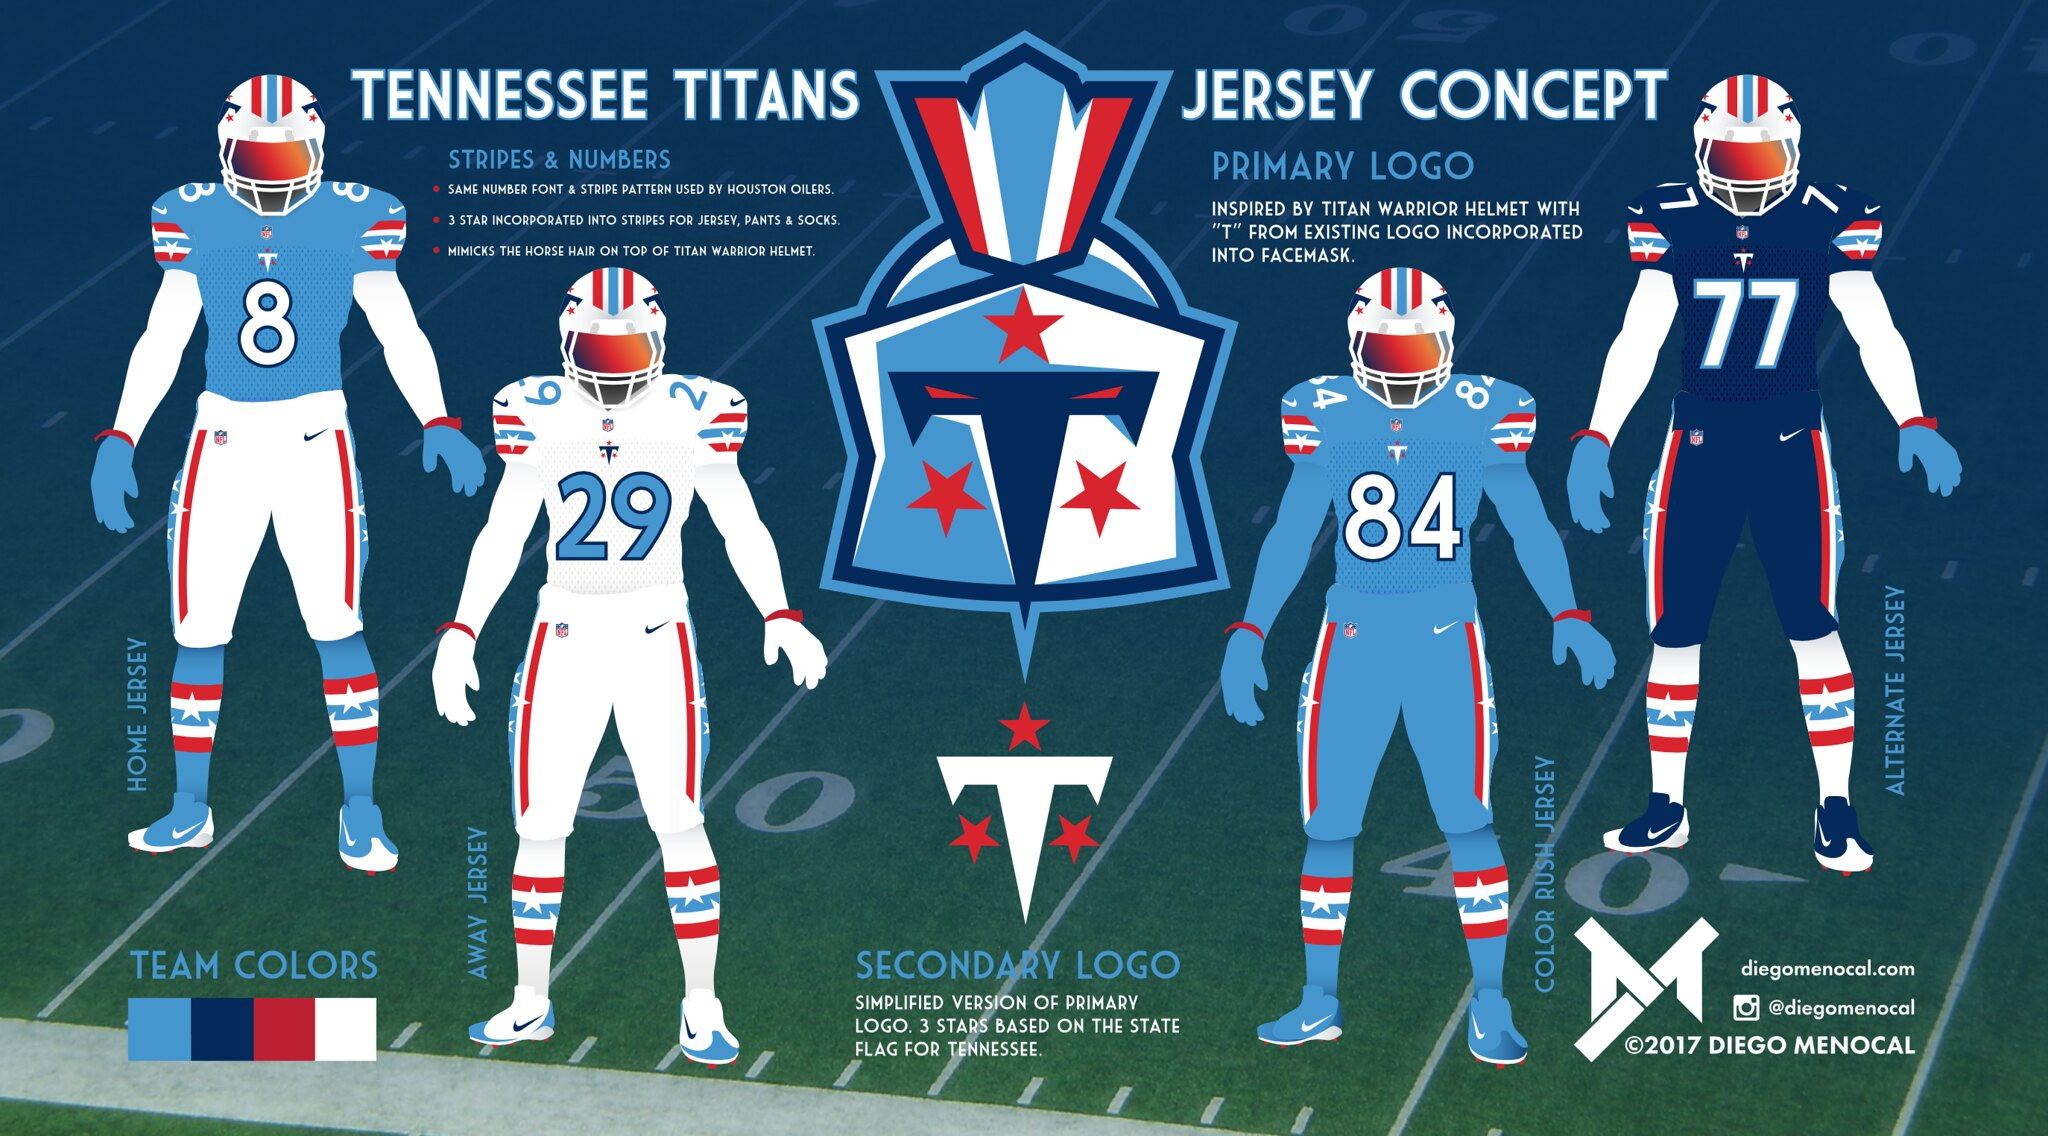 cdcfb9ea8 Several contestants gave the Titans a new logo based on a knight s or gladiator s  helmet. This a pretty tired sports design trope (think Michigan State